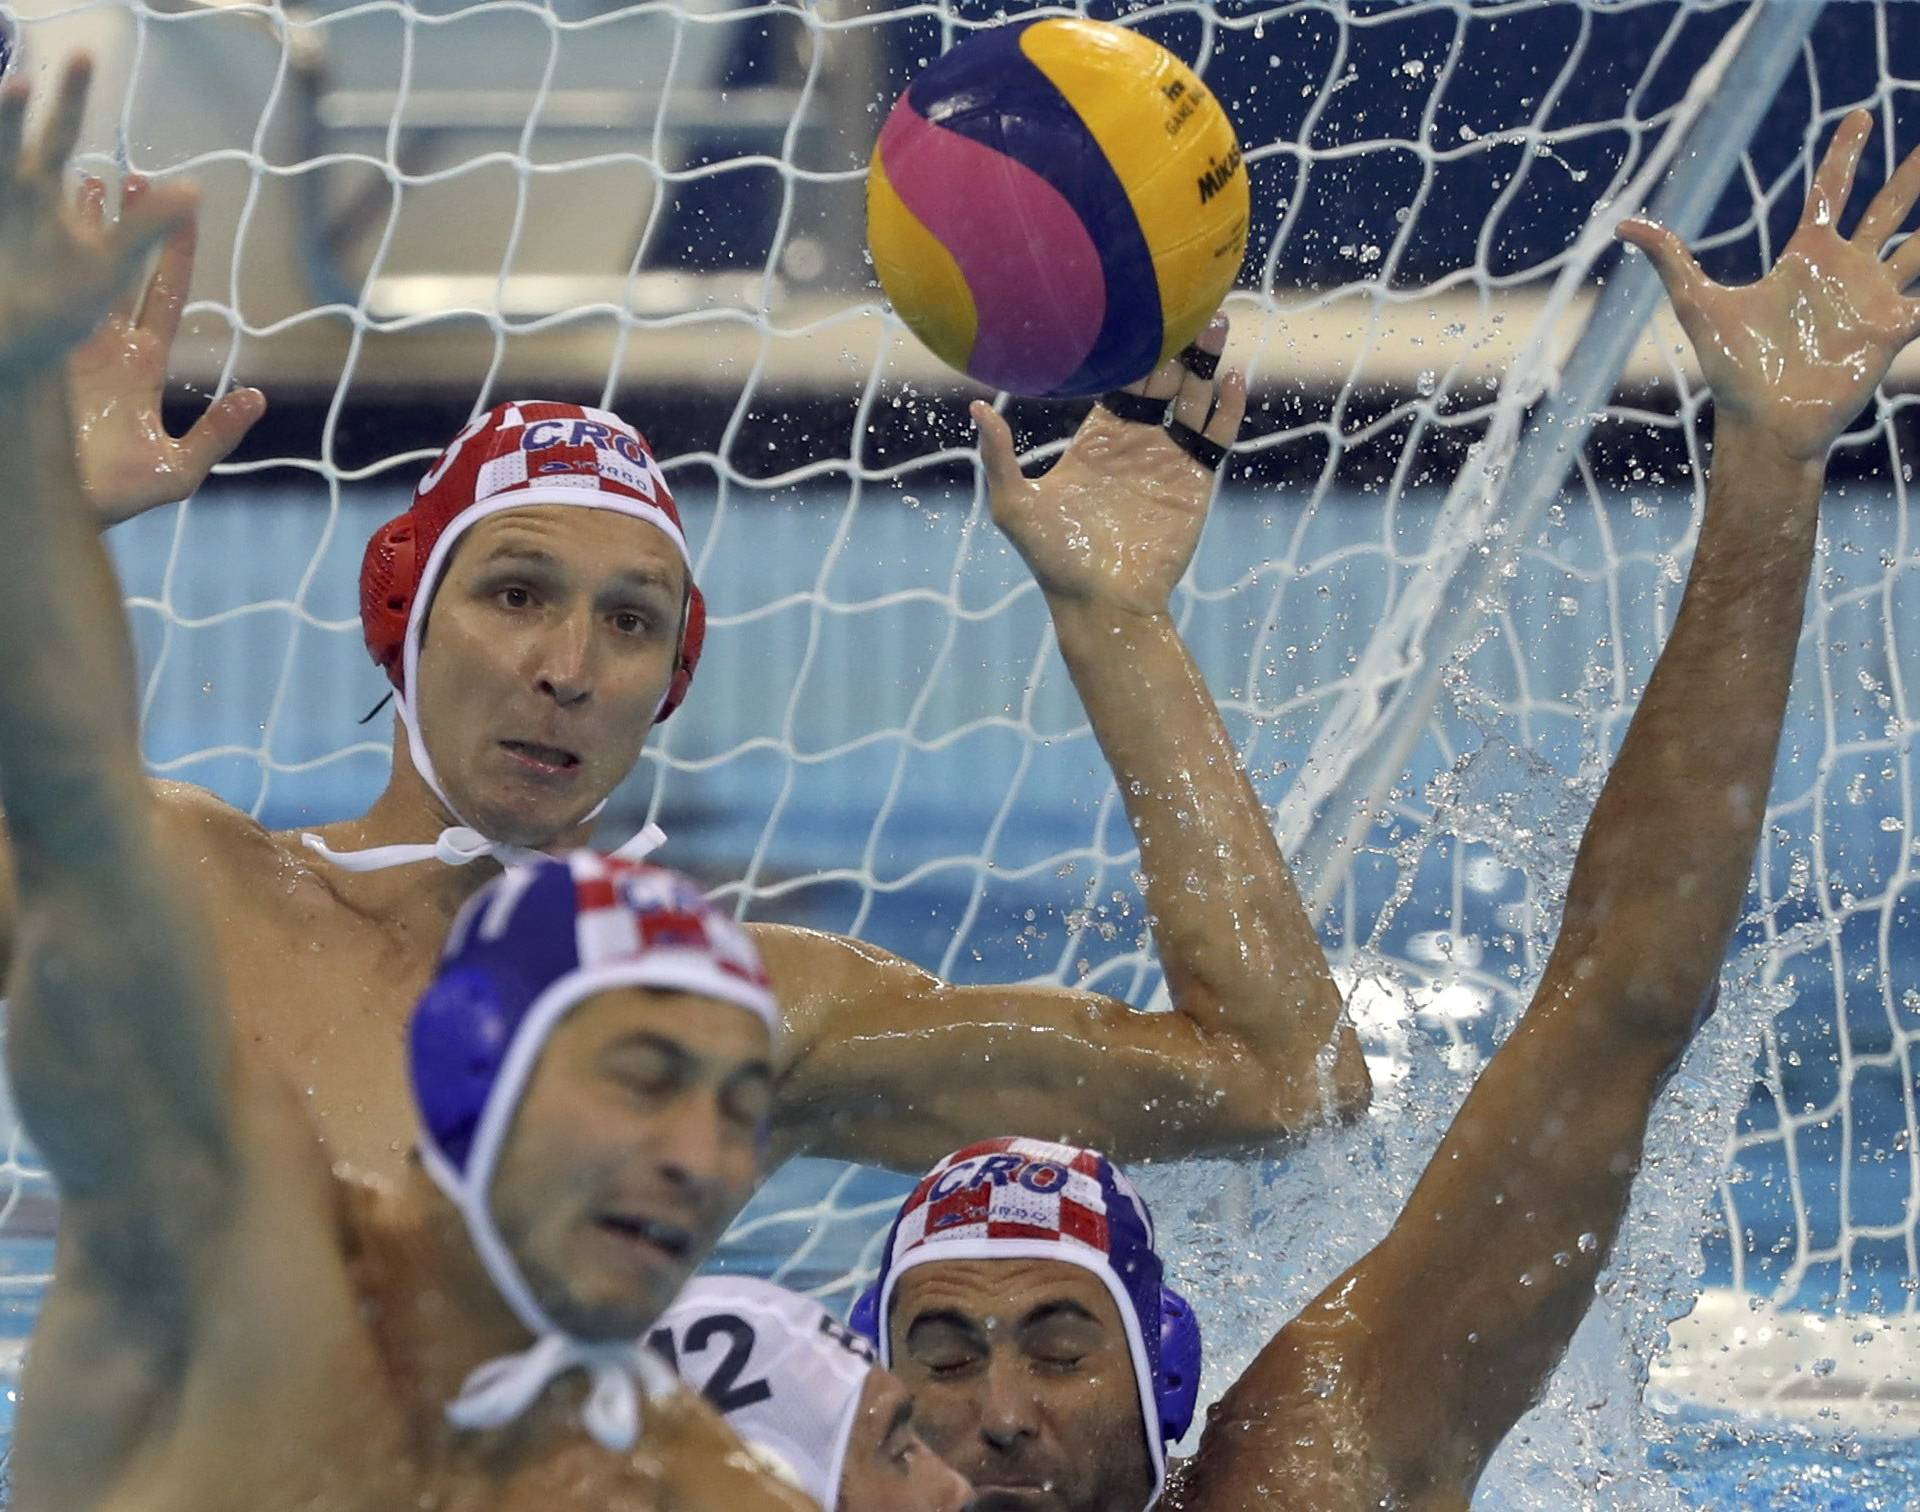 Water Polo - Men's Quarterfinal Brazil v Croatia